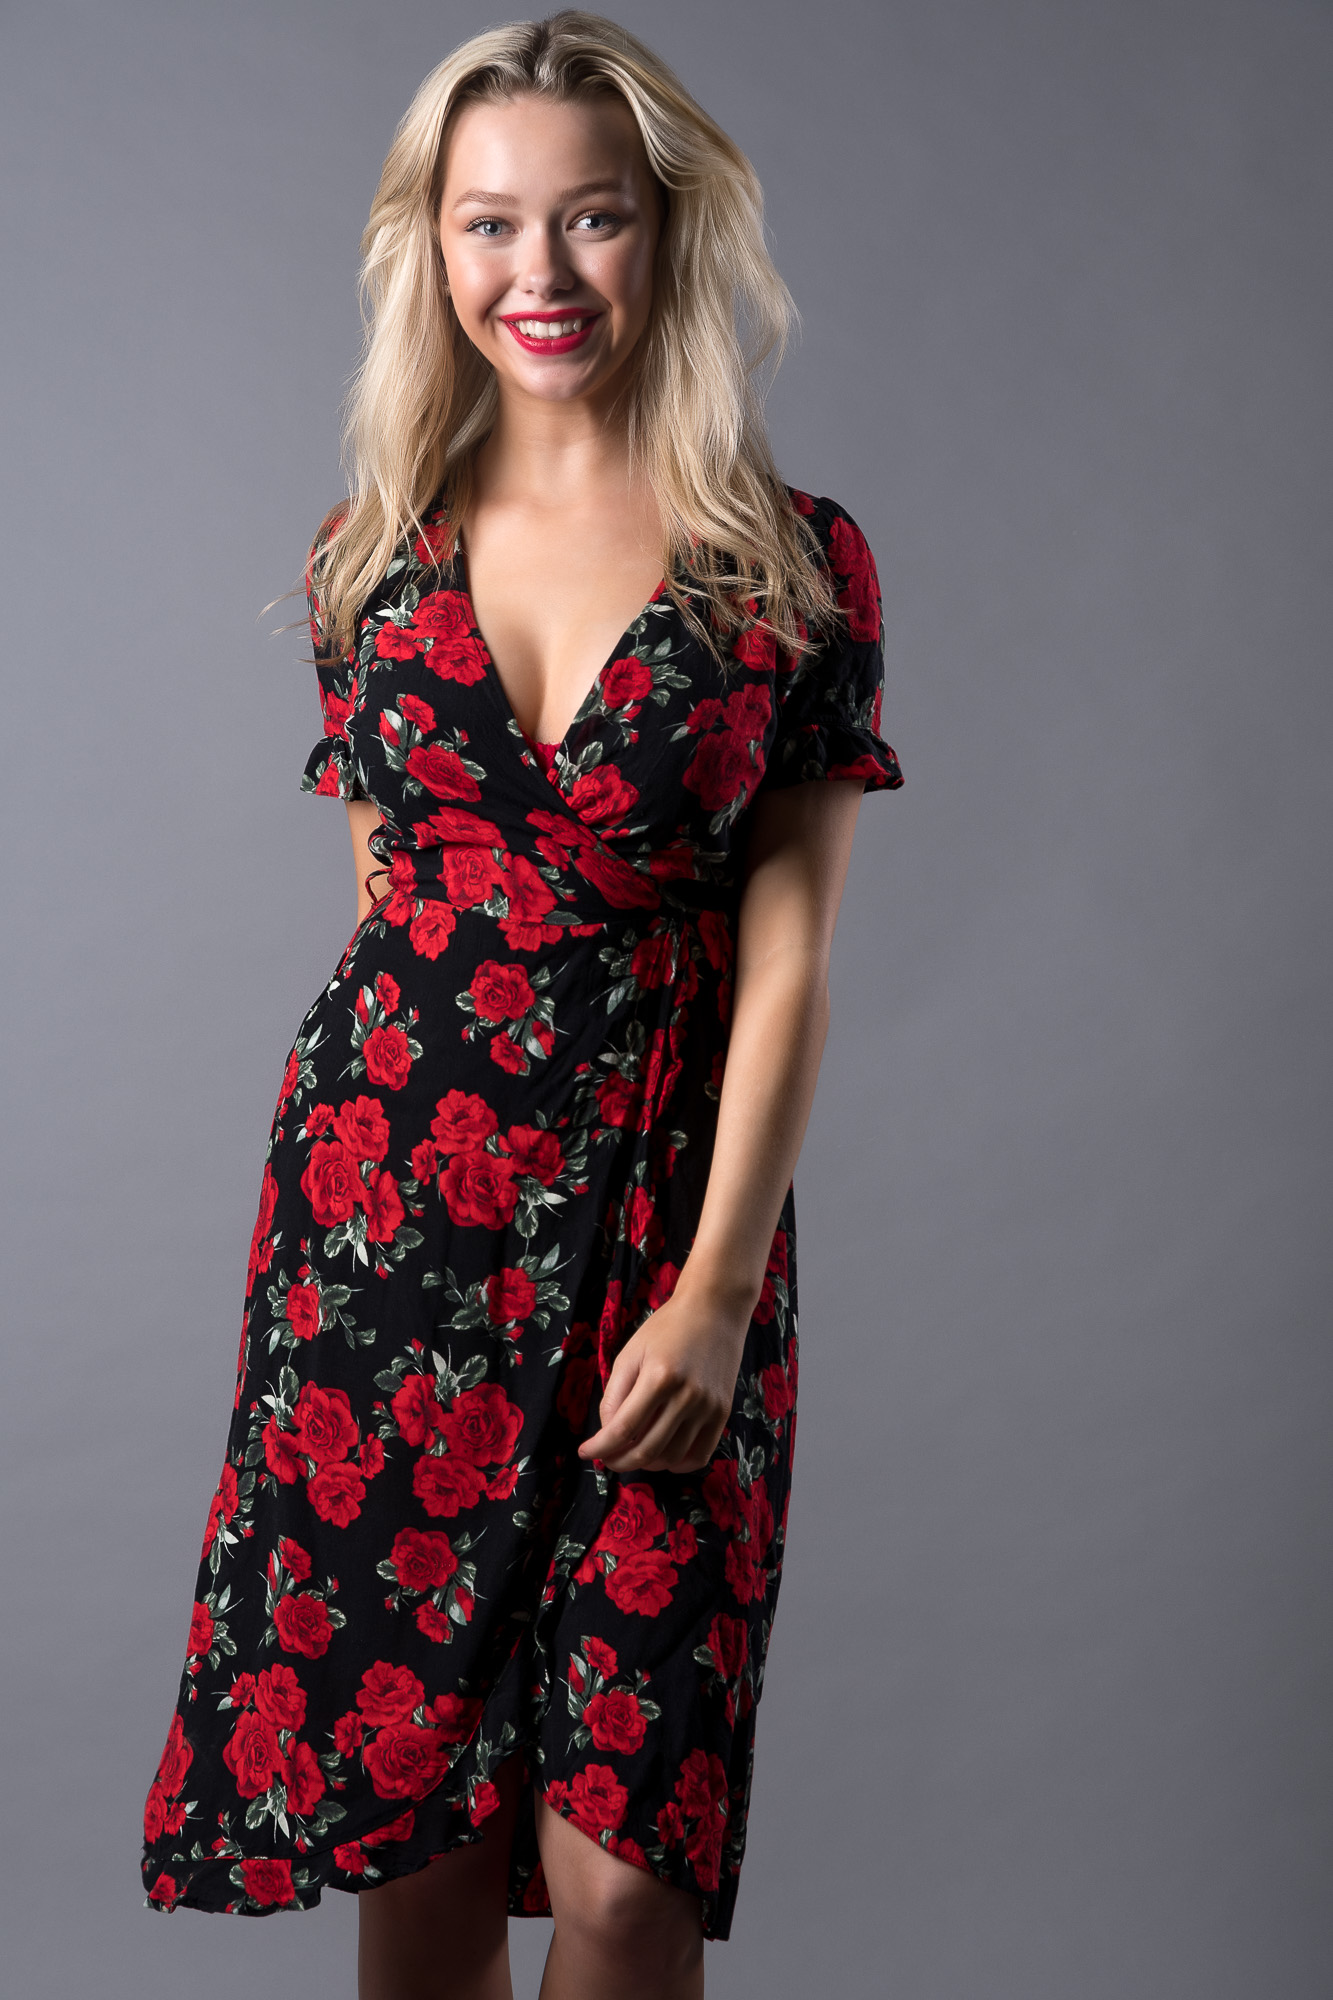 LaurenKnight-17May2019-105-Edit.jpg